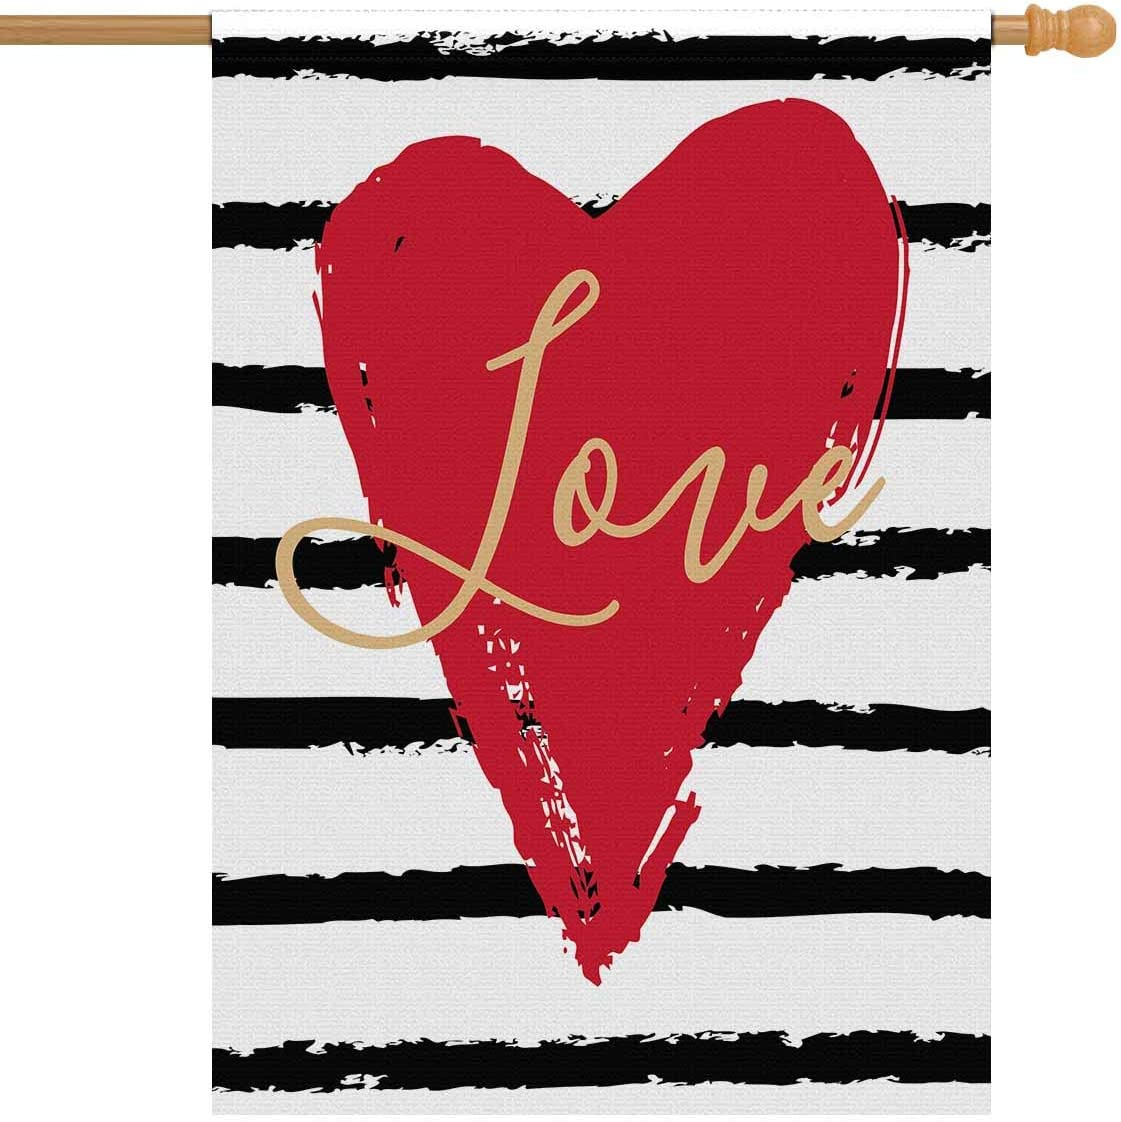 """INTERESTPRINT Valentine's Day with Red Love Heart on Striped Background Decorative Flag House Flag House Banner for Wishing Party Wedding Yard Home Decor 28"""" x 40"""" (Without Flagpole)"""